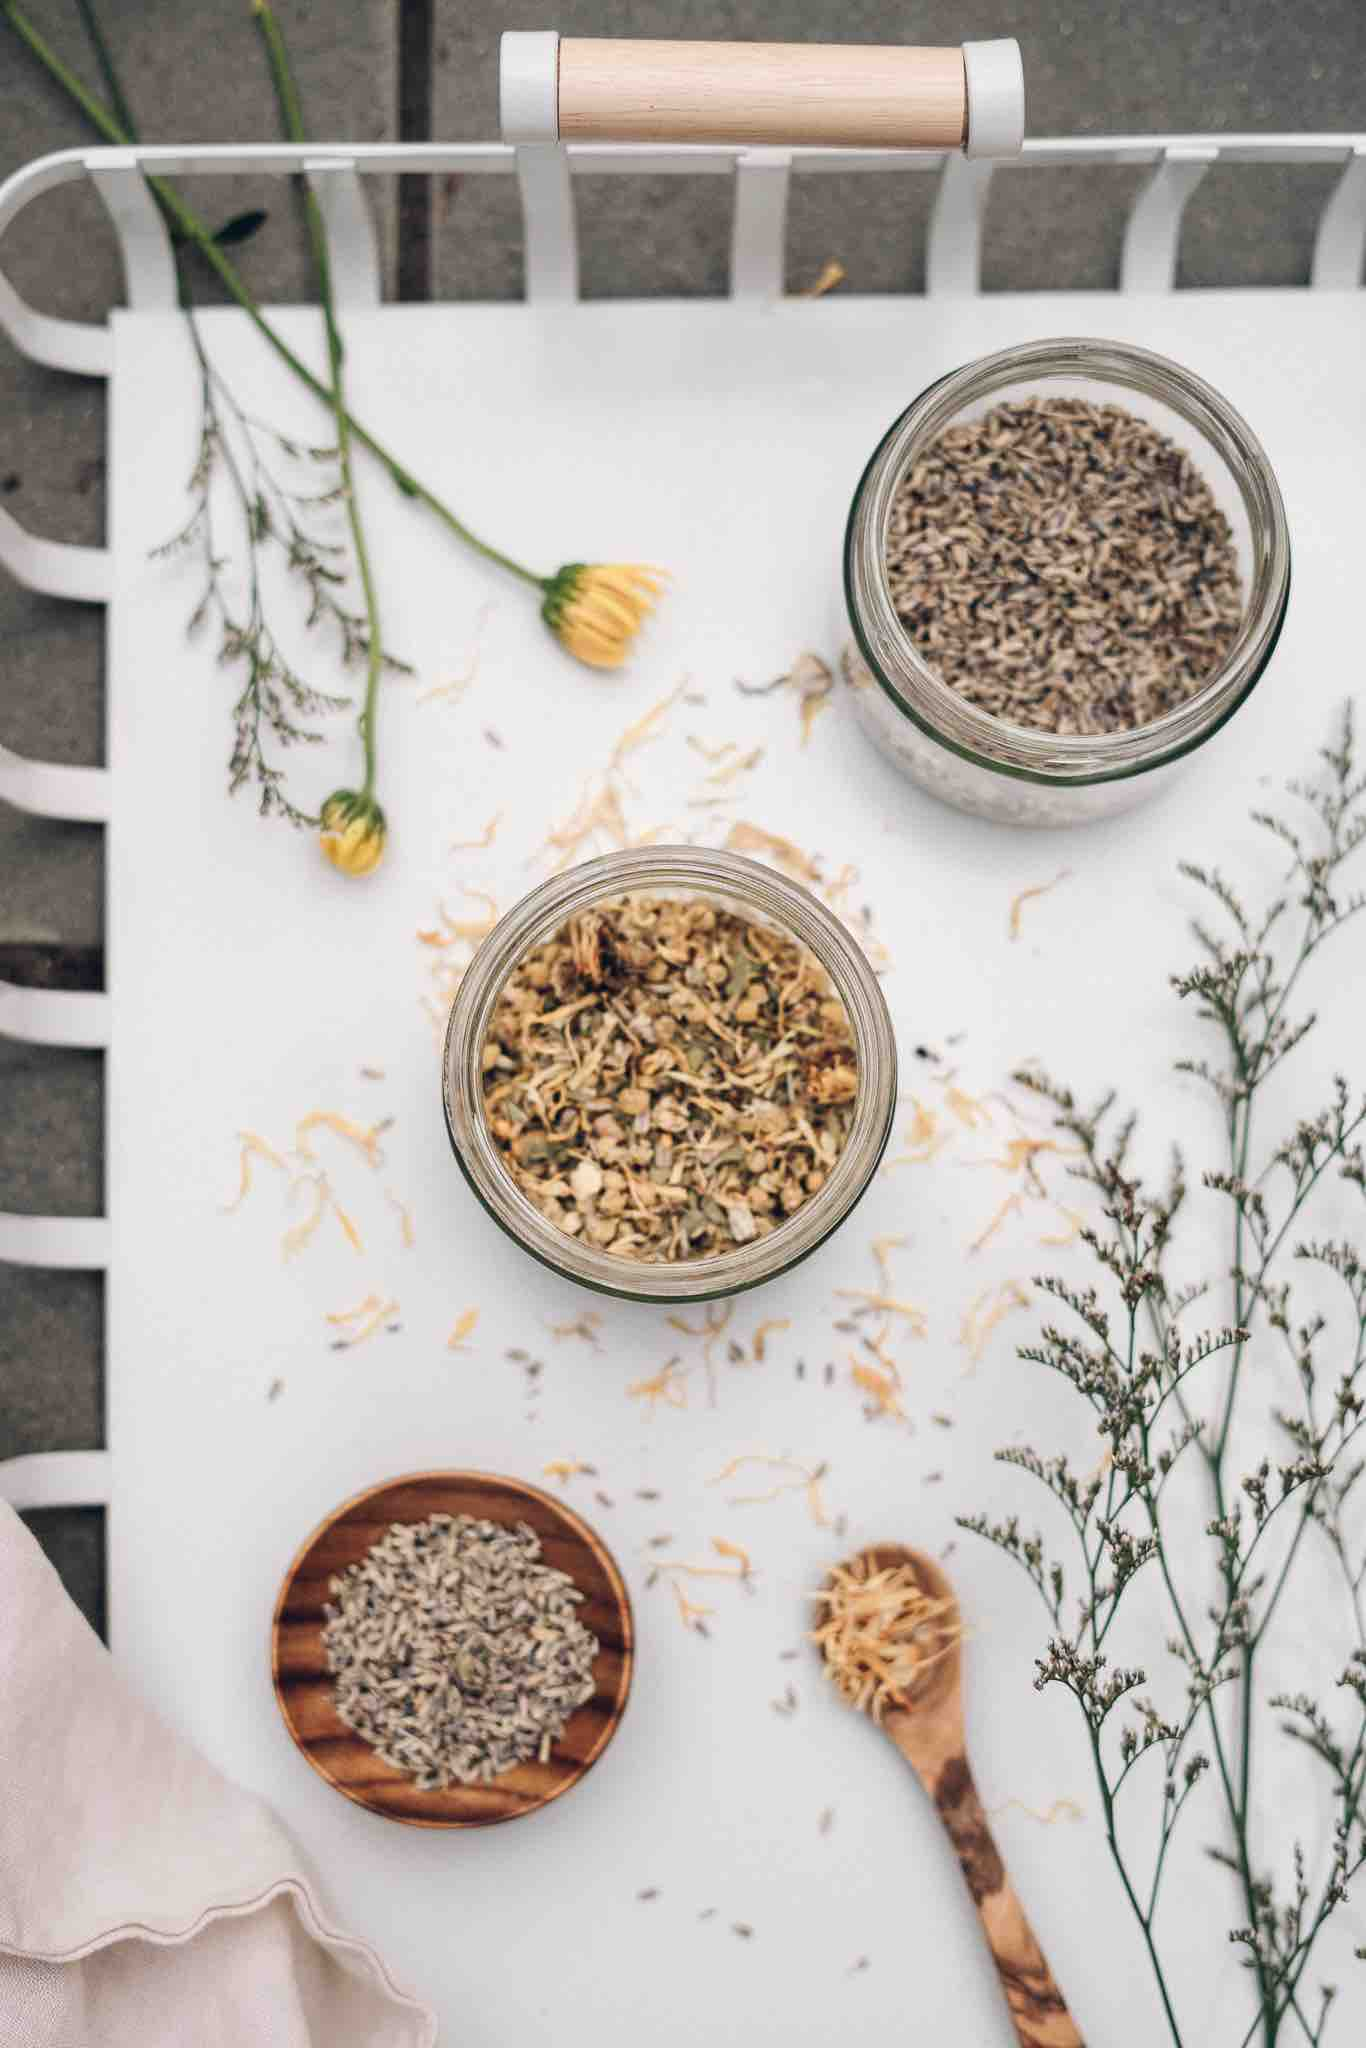 5 Healing Herbs For Holistic Health And Wellness - The Well Essentials - Herbalism